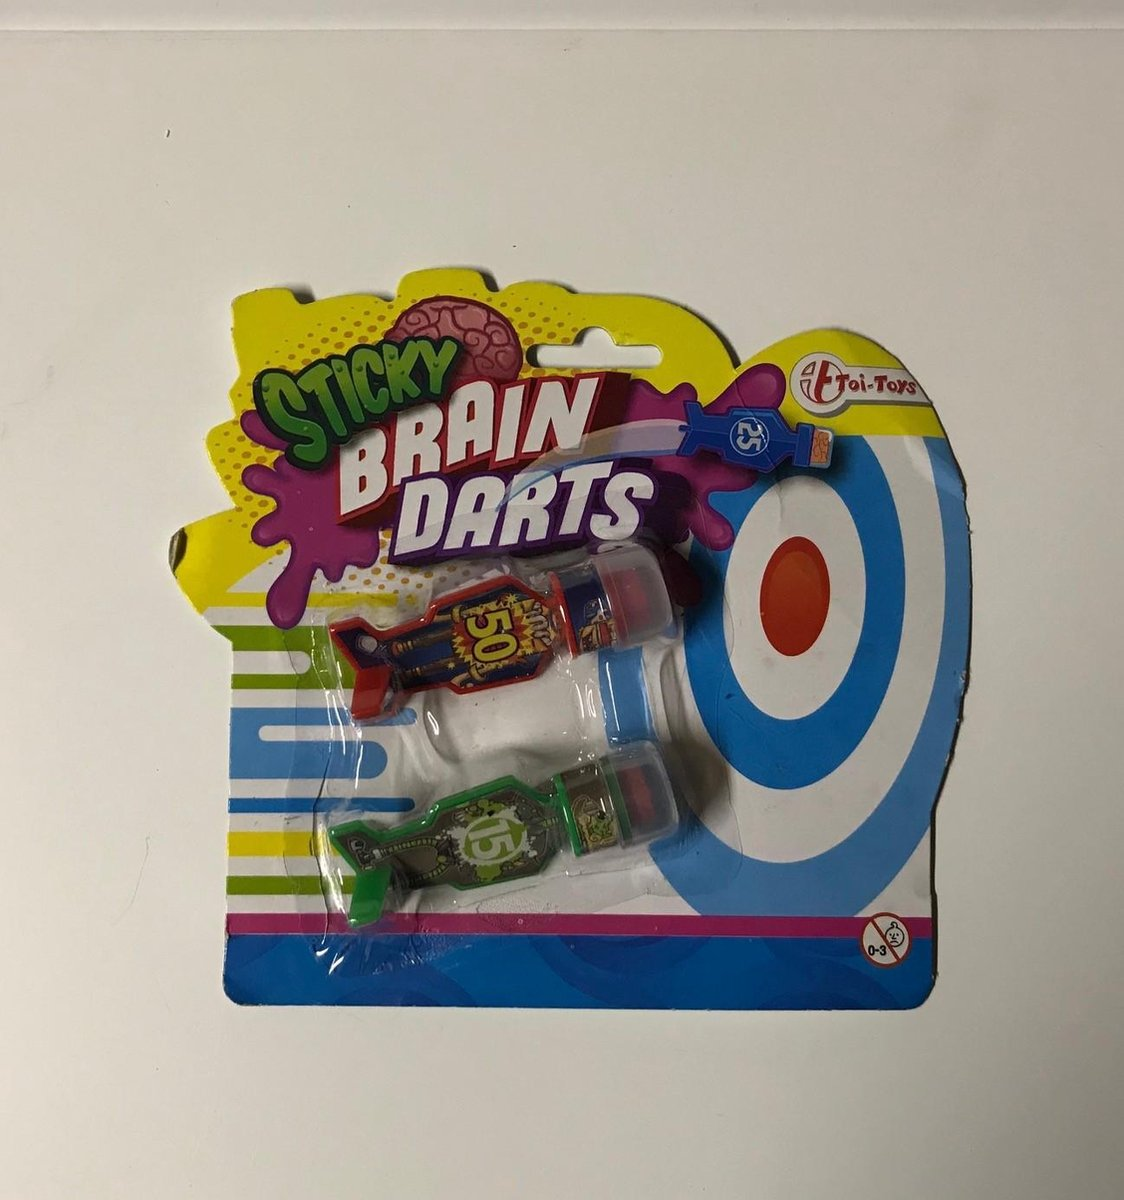 Sticky Brain Darts Rood/ Groen